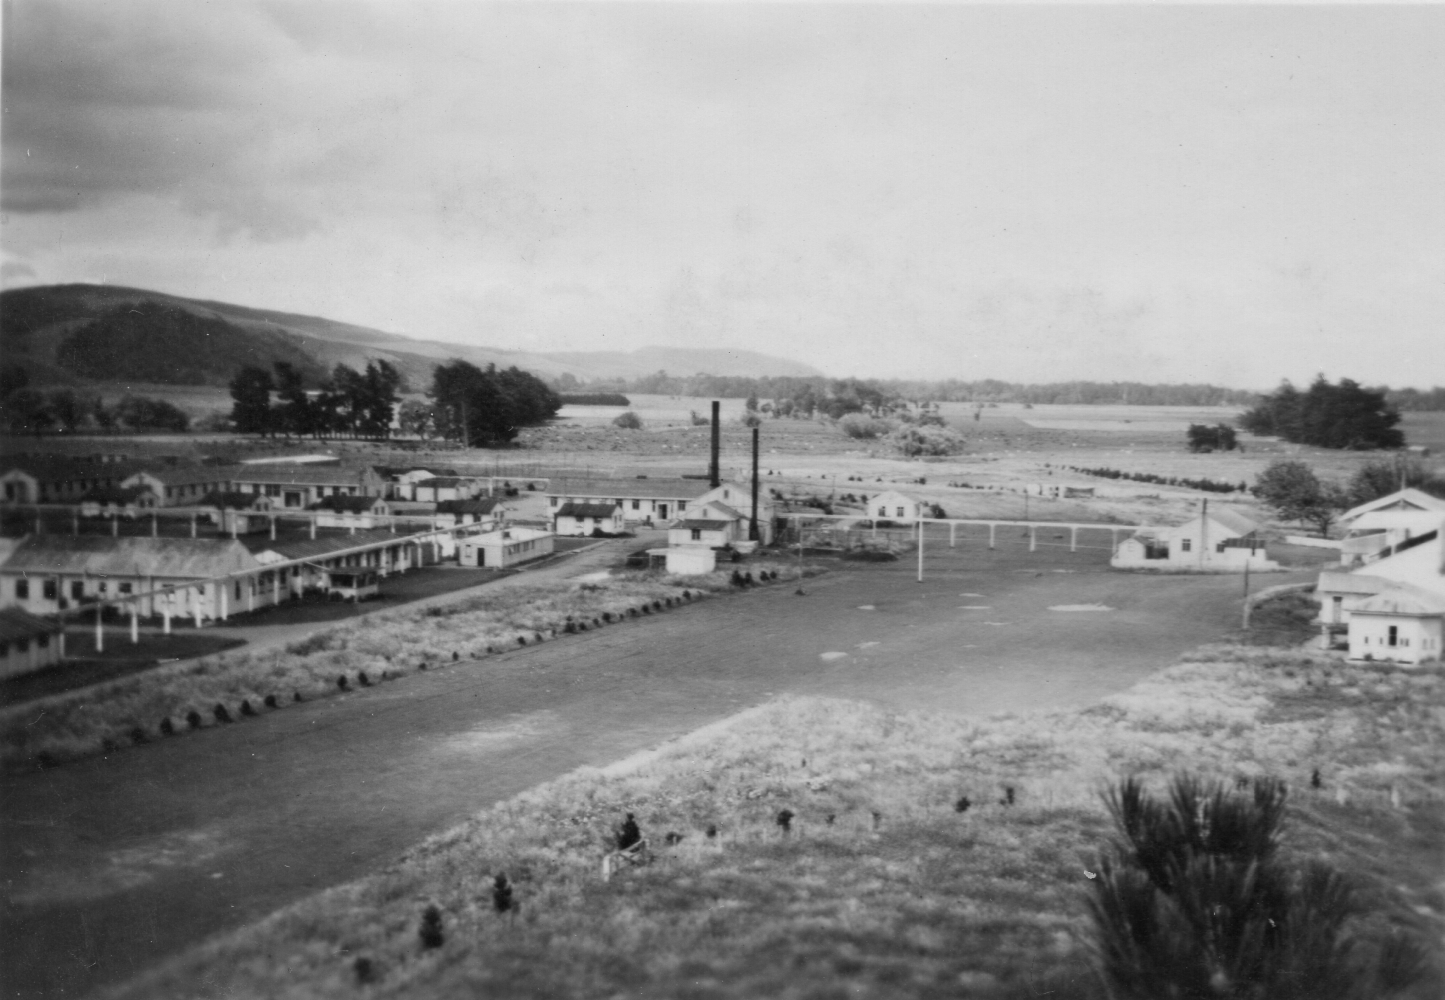 First of seven  black and white photographs of the Pahiatua camp. This one shows the camp on both sides of the old racetrack, pre-fabricated  buildings and hills in the background.